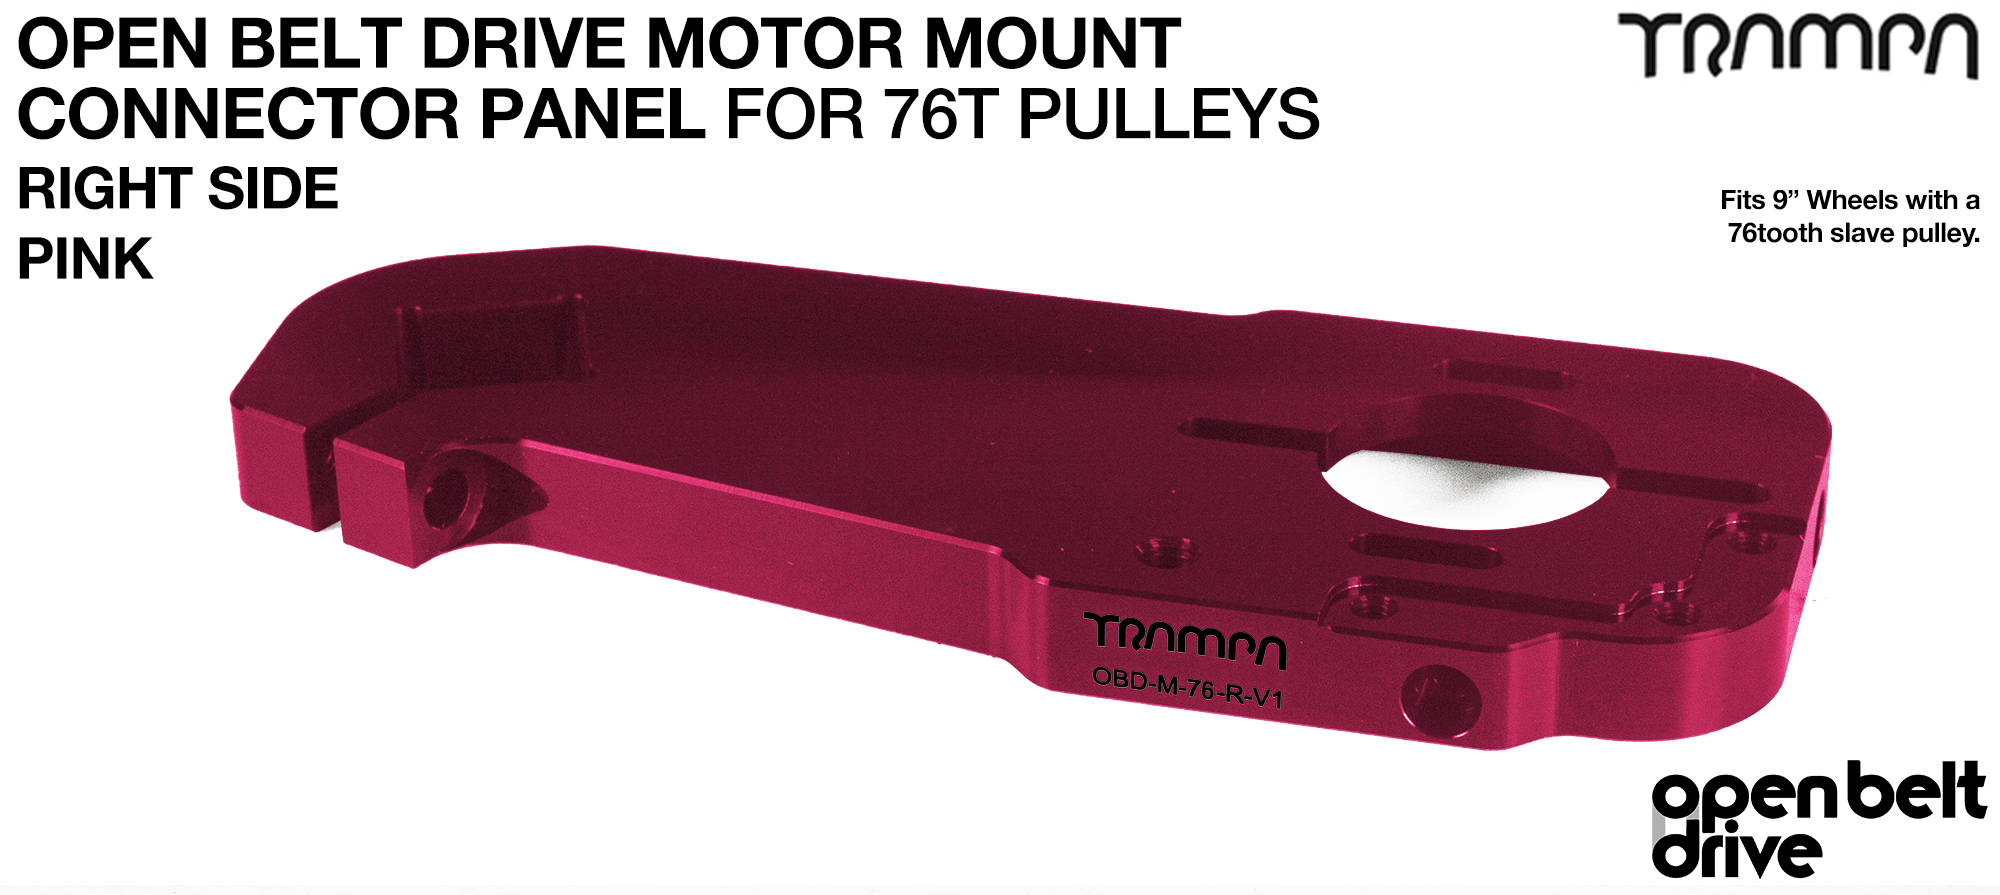 OBD Motor Mount Connector Panel for 76 tooth Pulleys - GOOFY - PINK